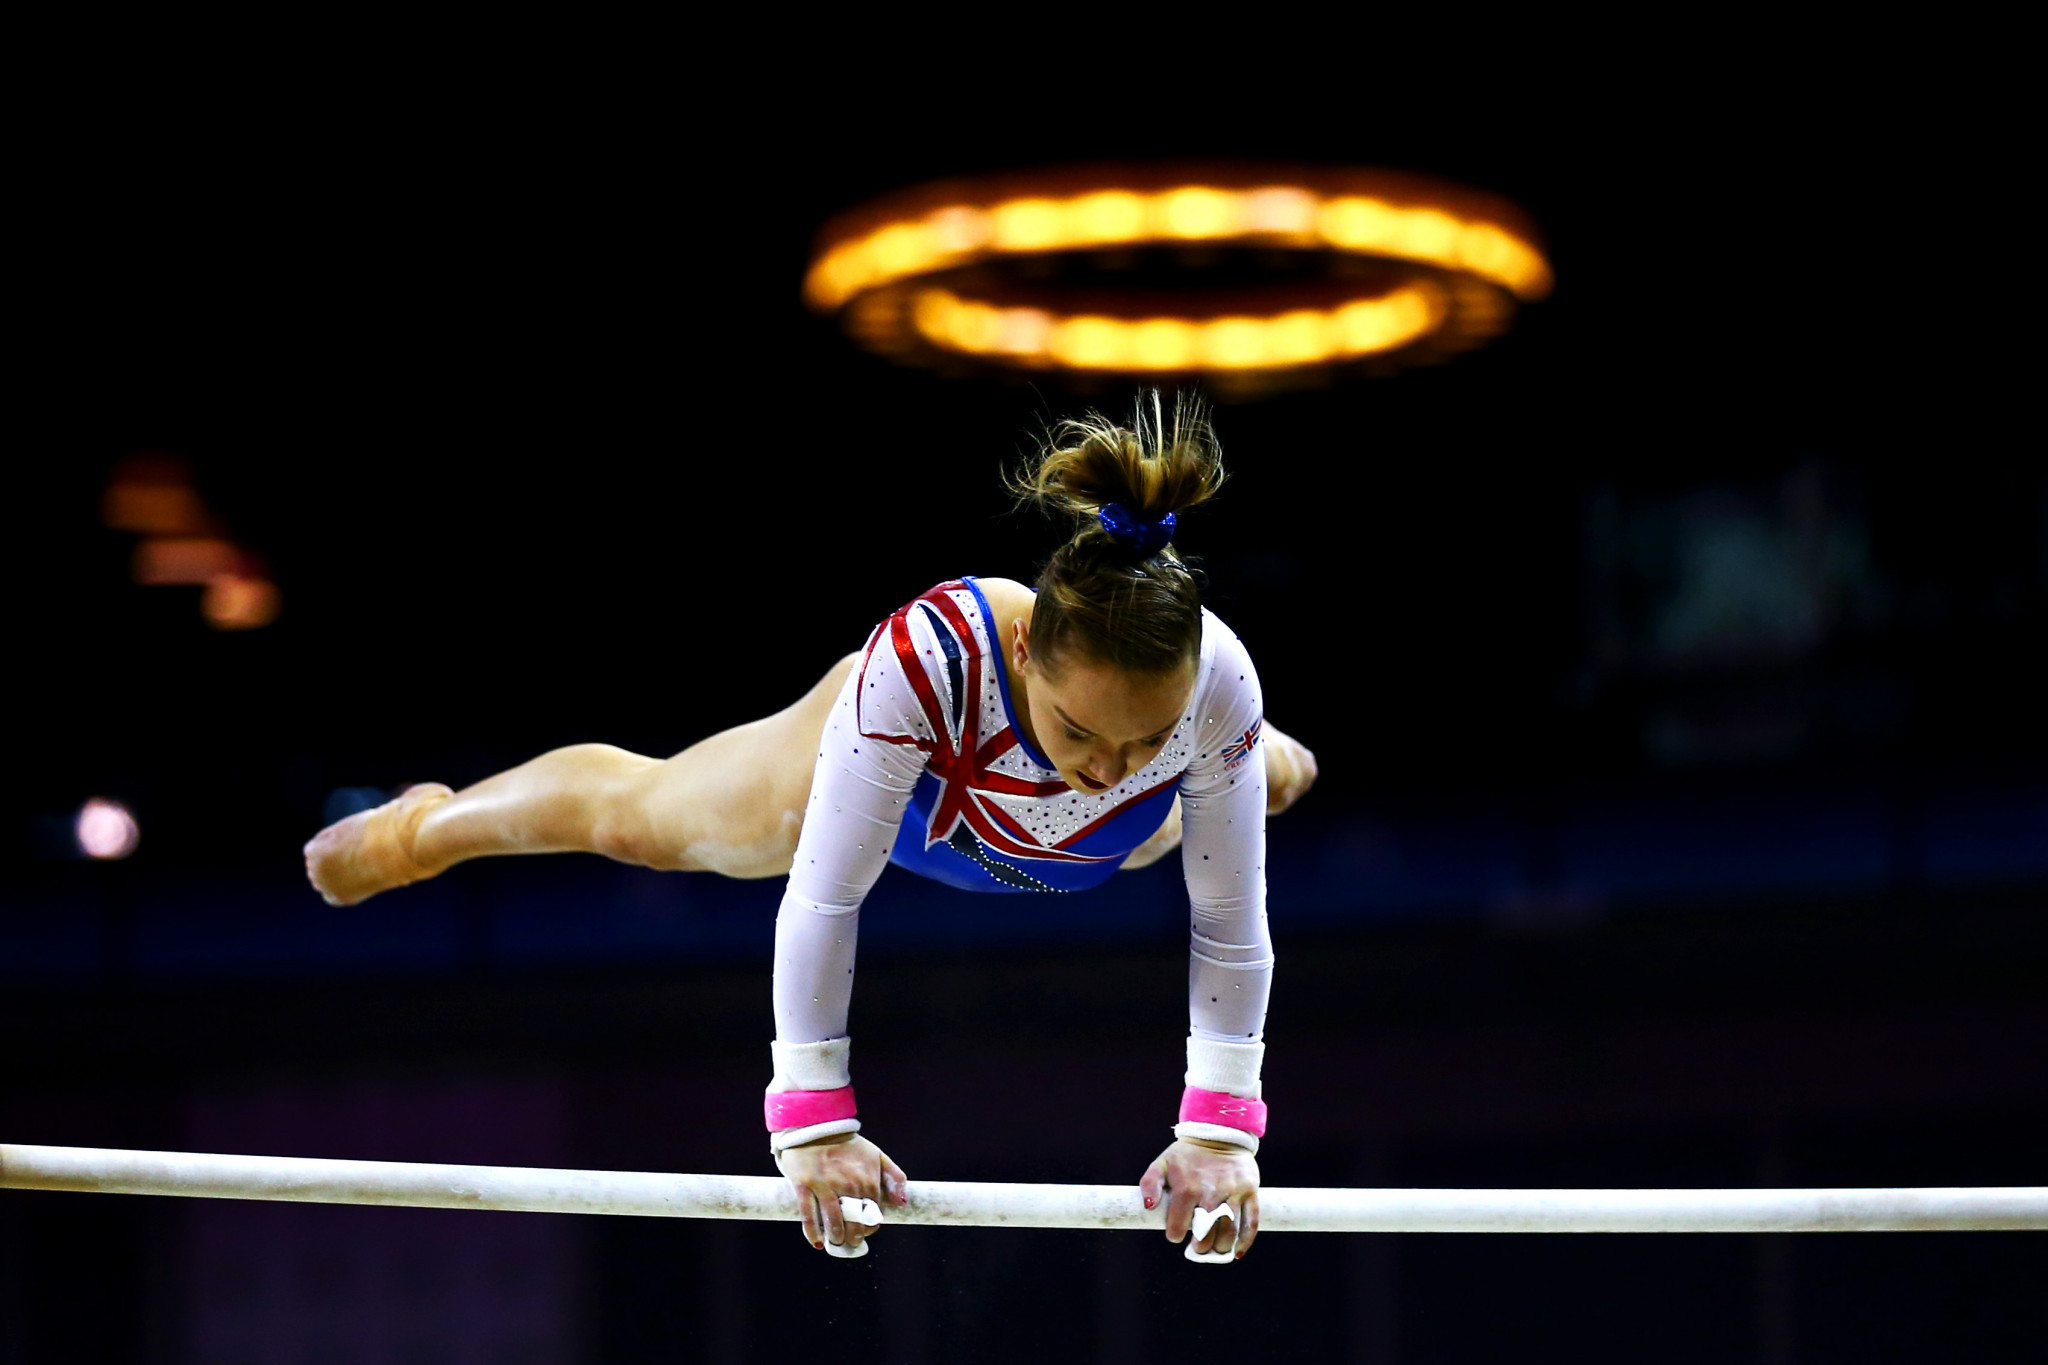 Jane Allen, chief executive of British Gymnastics, announced today that she is to retire in the wake of abuse allegations made by Amy Tinkler -pictured - and others ©Getty Images